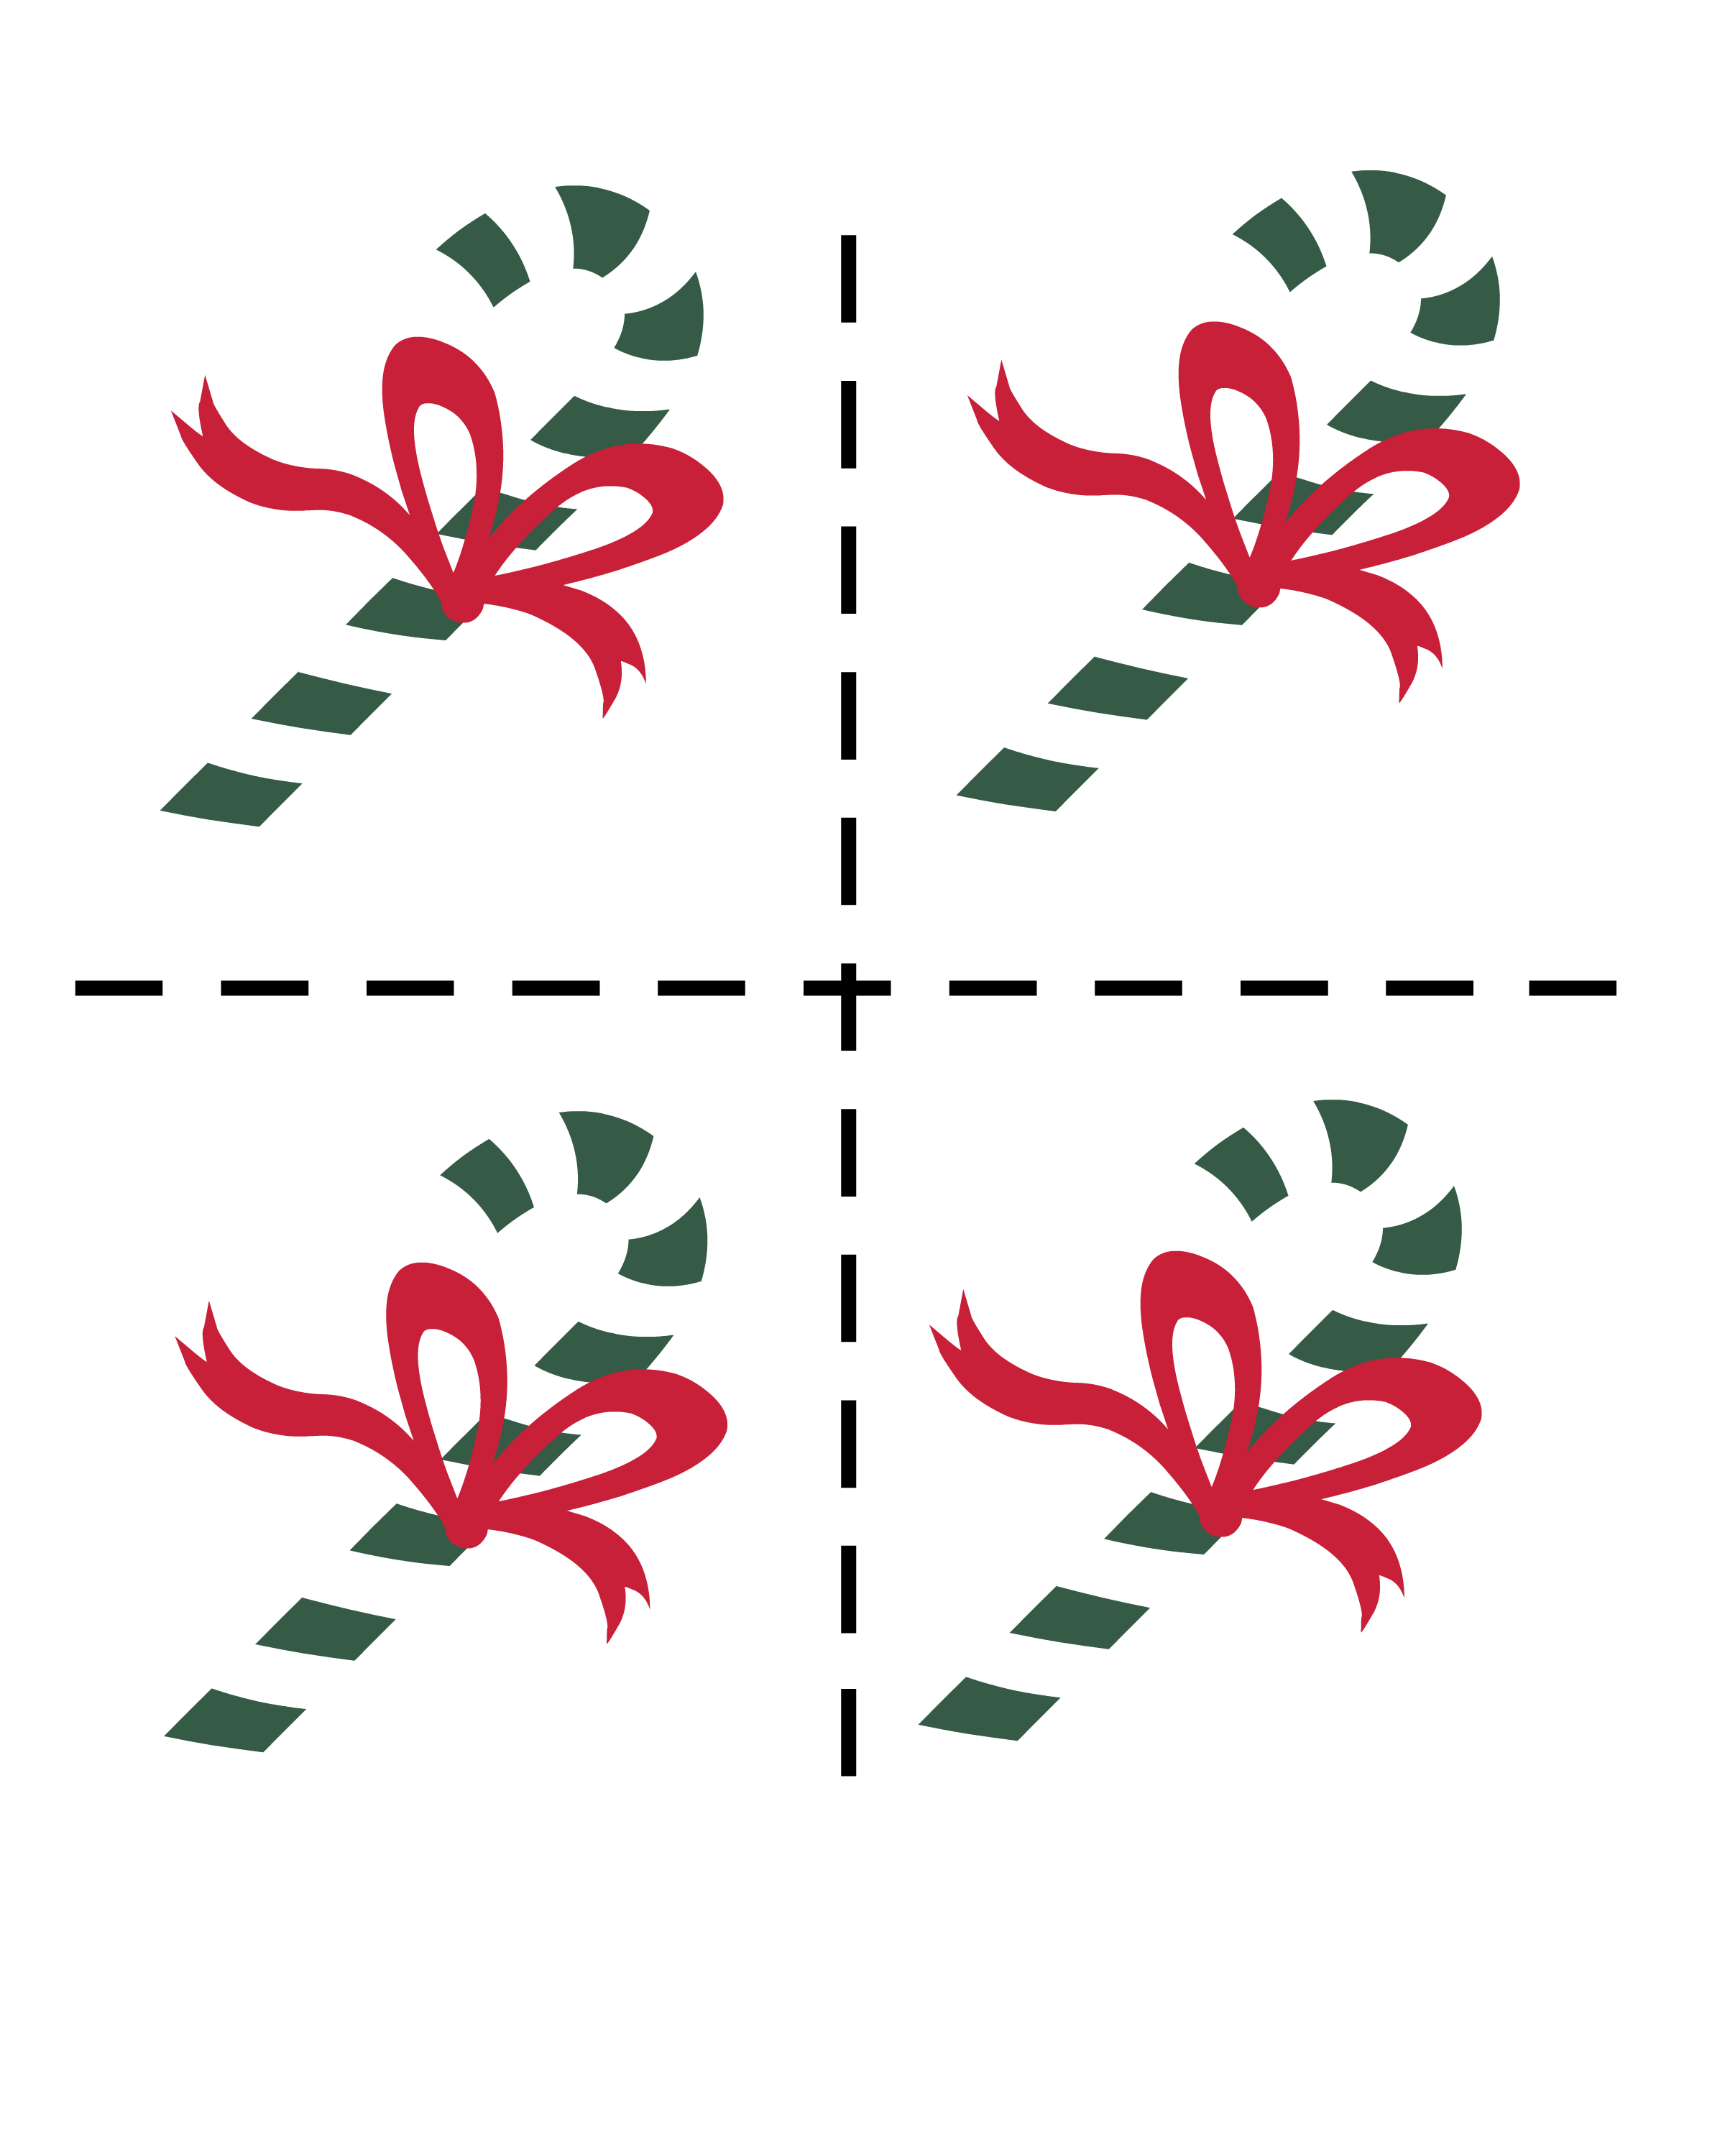 Candy Cane Cut Out Sugar Cookies: Candy Cane Counting Sticks In Preschool!